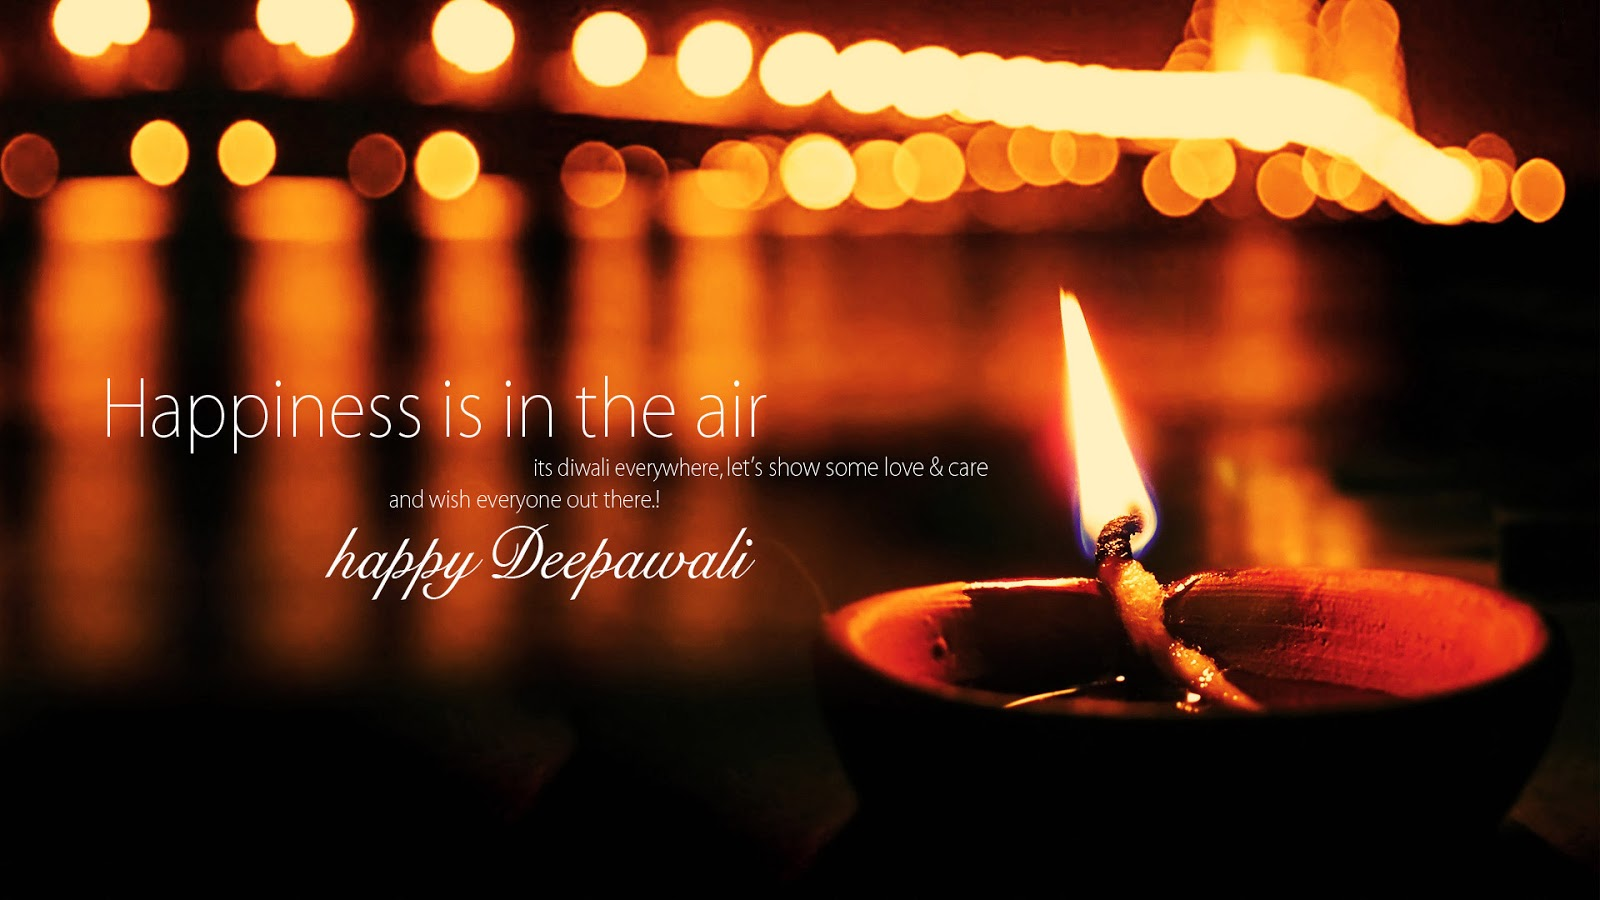 Download Free HD Wallpapers Of Diwali